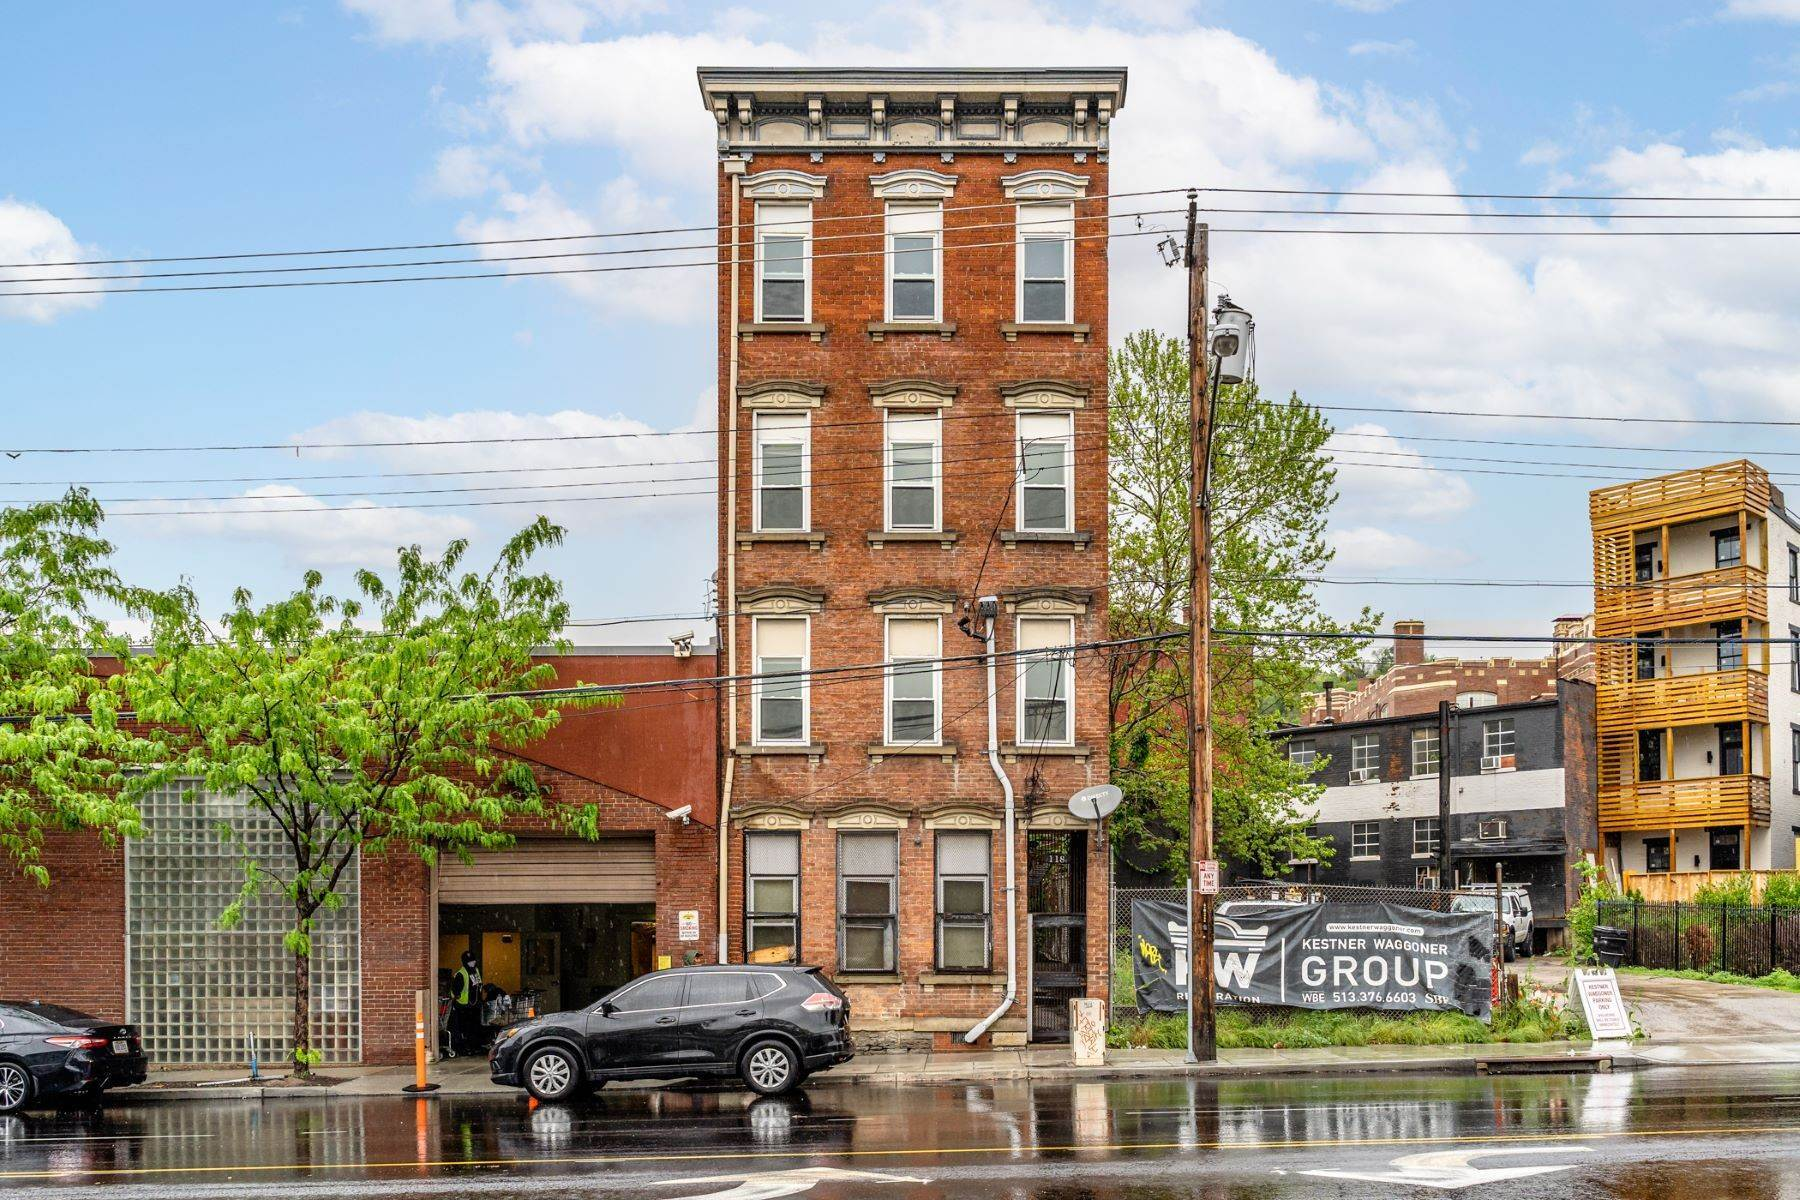 Multi-Family Homes for Sale at 118 East Liberty Street, Cincinnati, OH 45202 118 East Liberty Street Cincinnati, Ohio 45202 United States